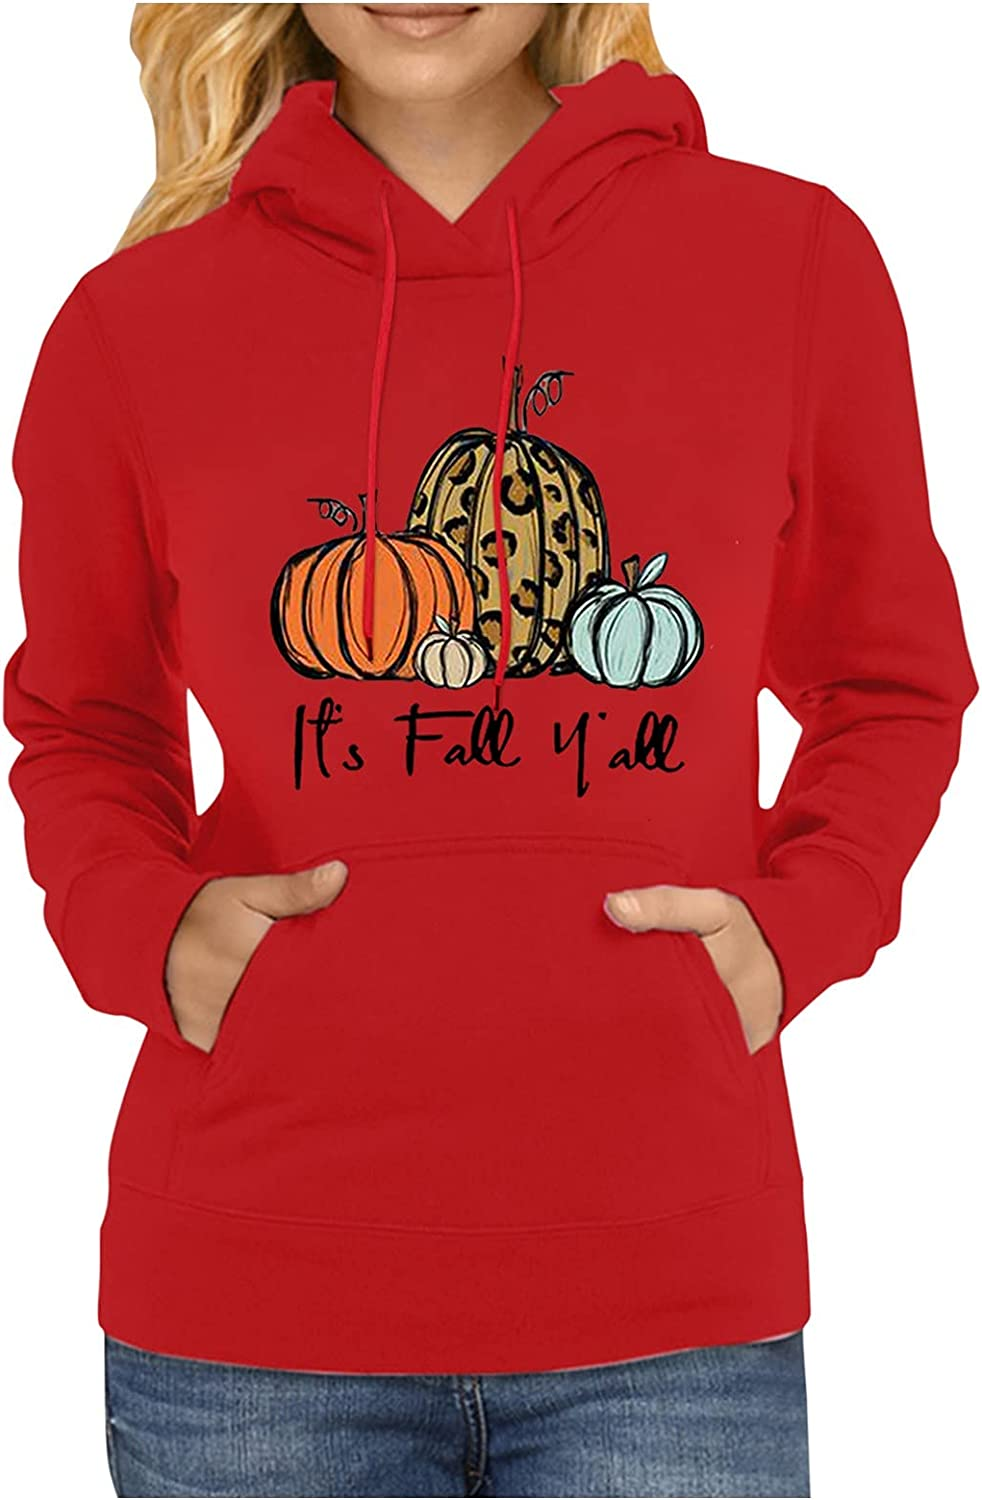 Women's Sweatshirts Hoodie with Pocket Casual Fall Long Sleeves Pullover Drawstring Hooded Halloween Print Tops